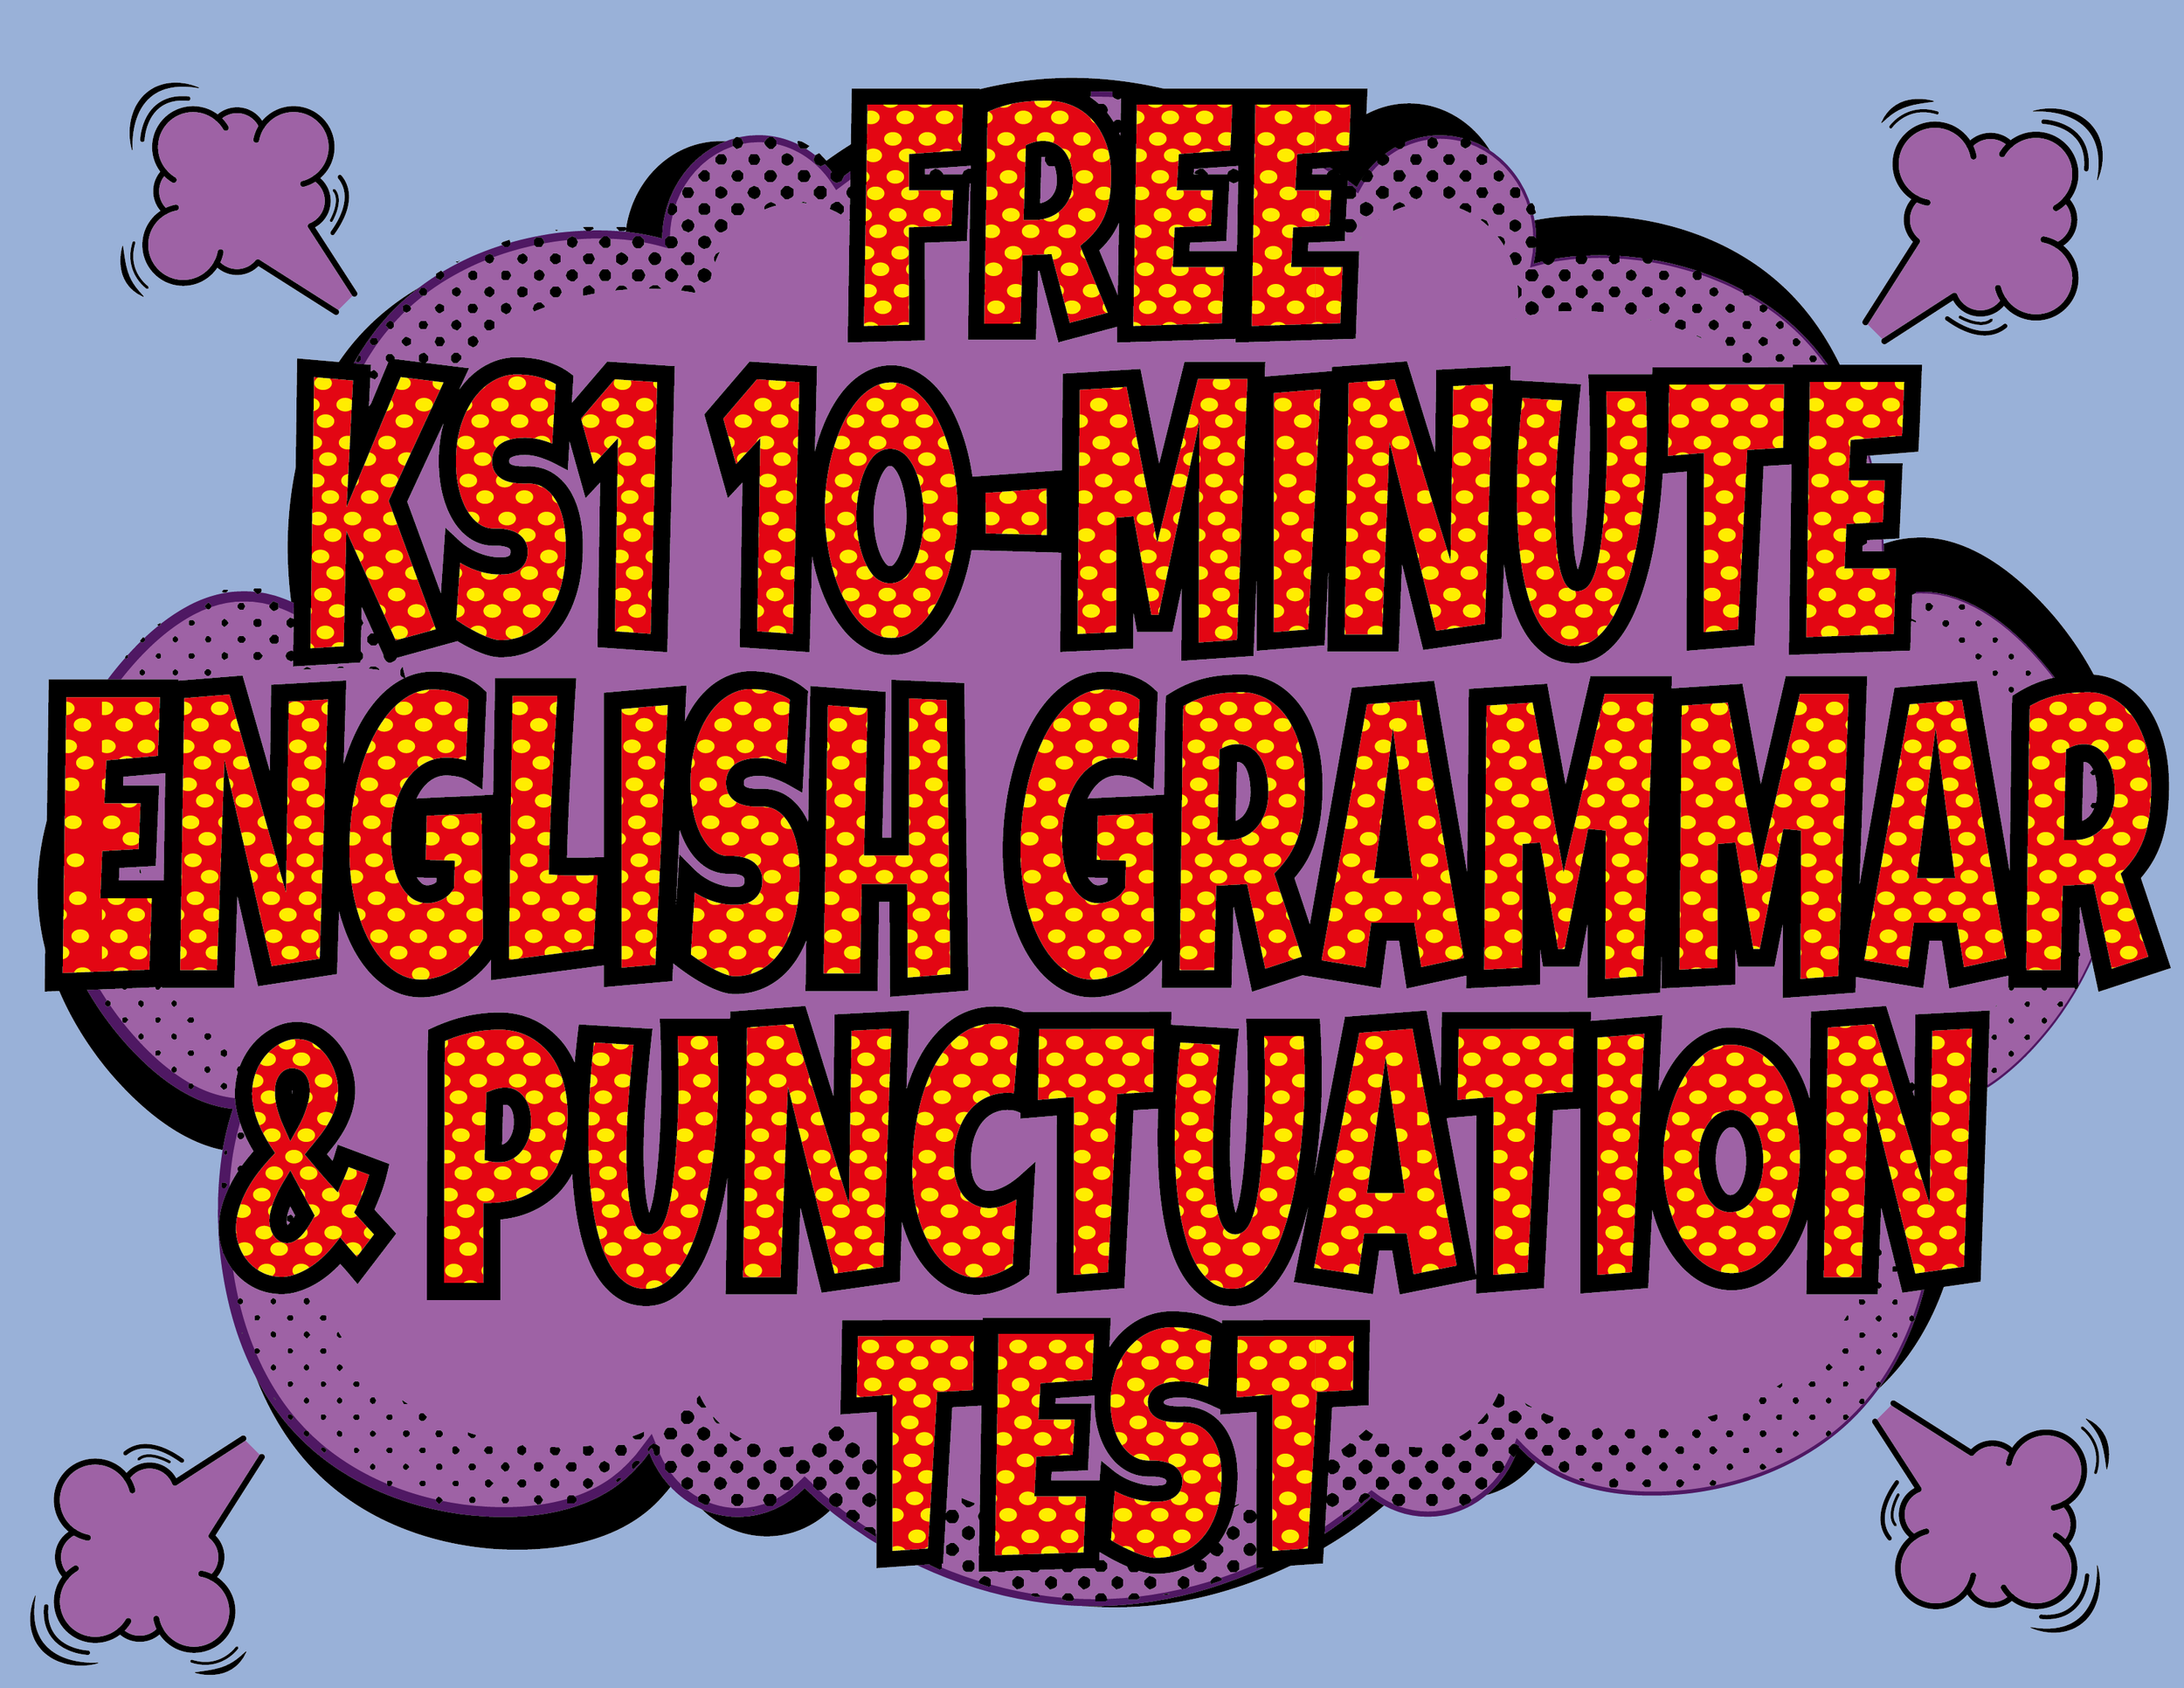 Free KS1 10-Minute English Test - Questions & Answers - DOWNLOAD THE PRINTABLE PDFs OR DO IT ONLINE!